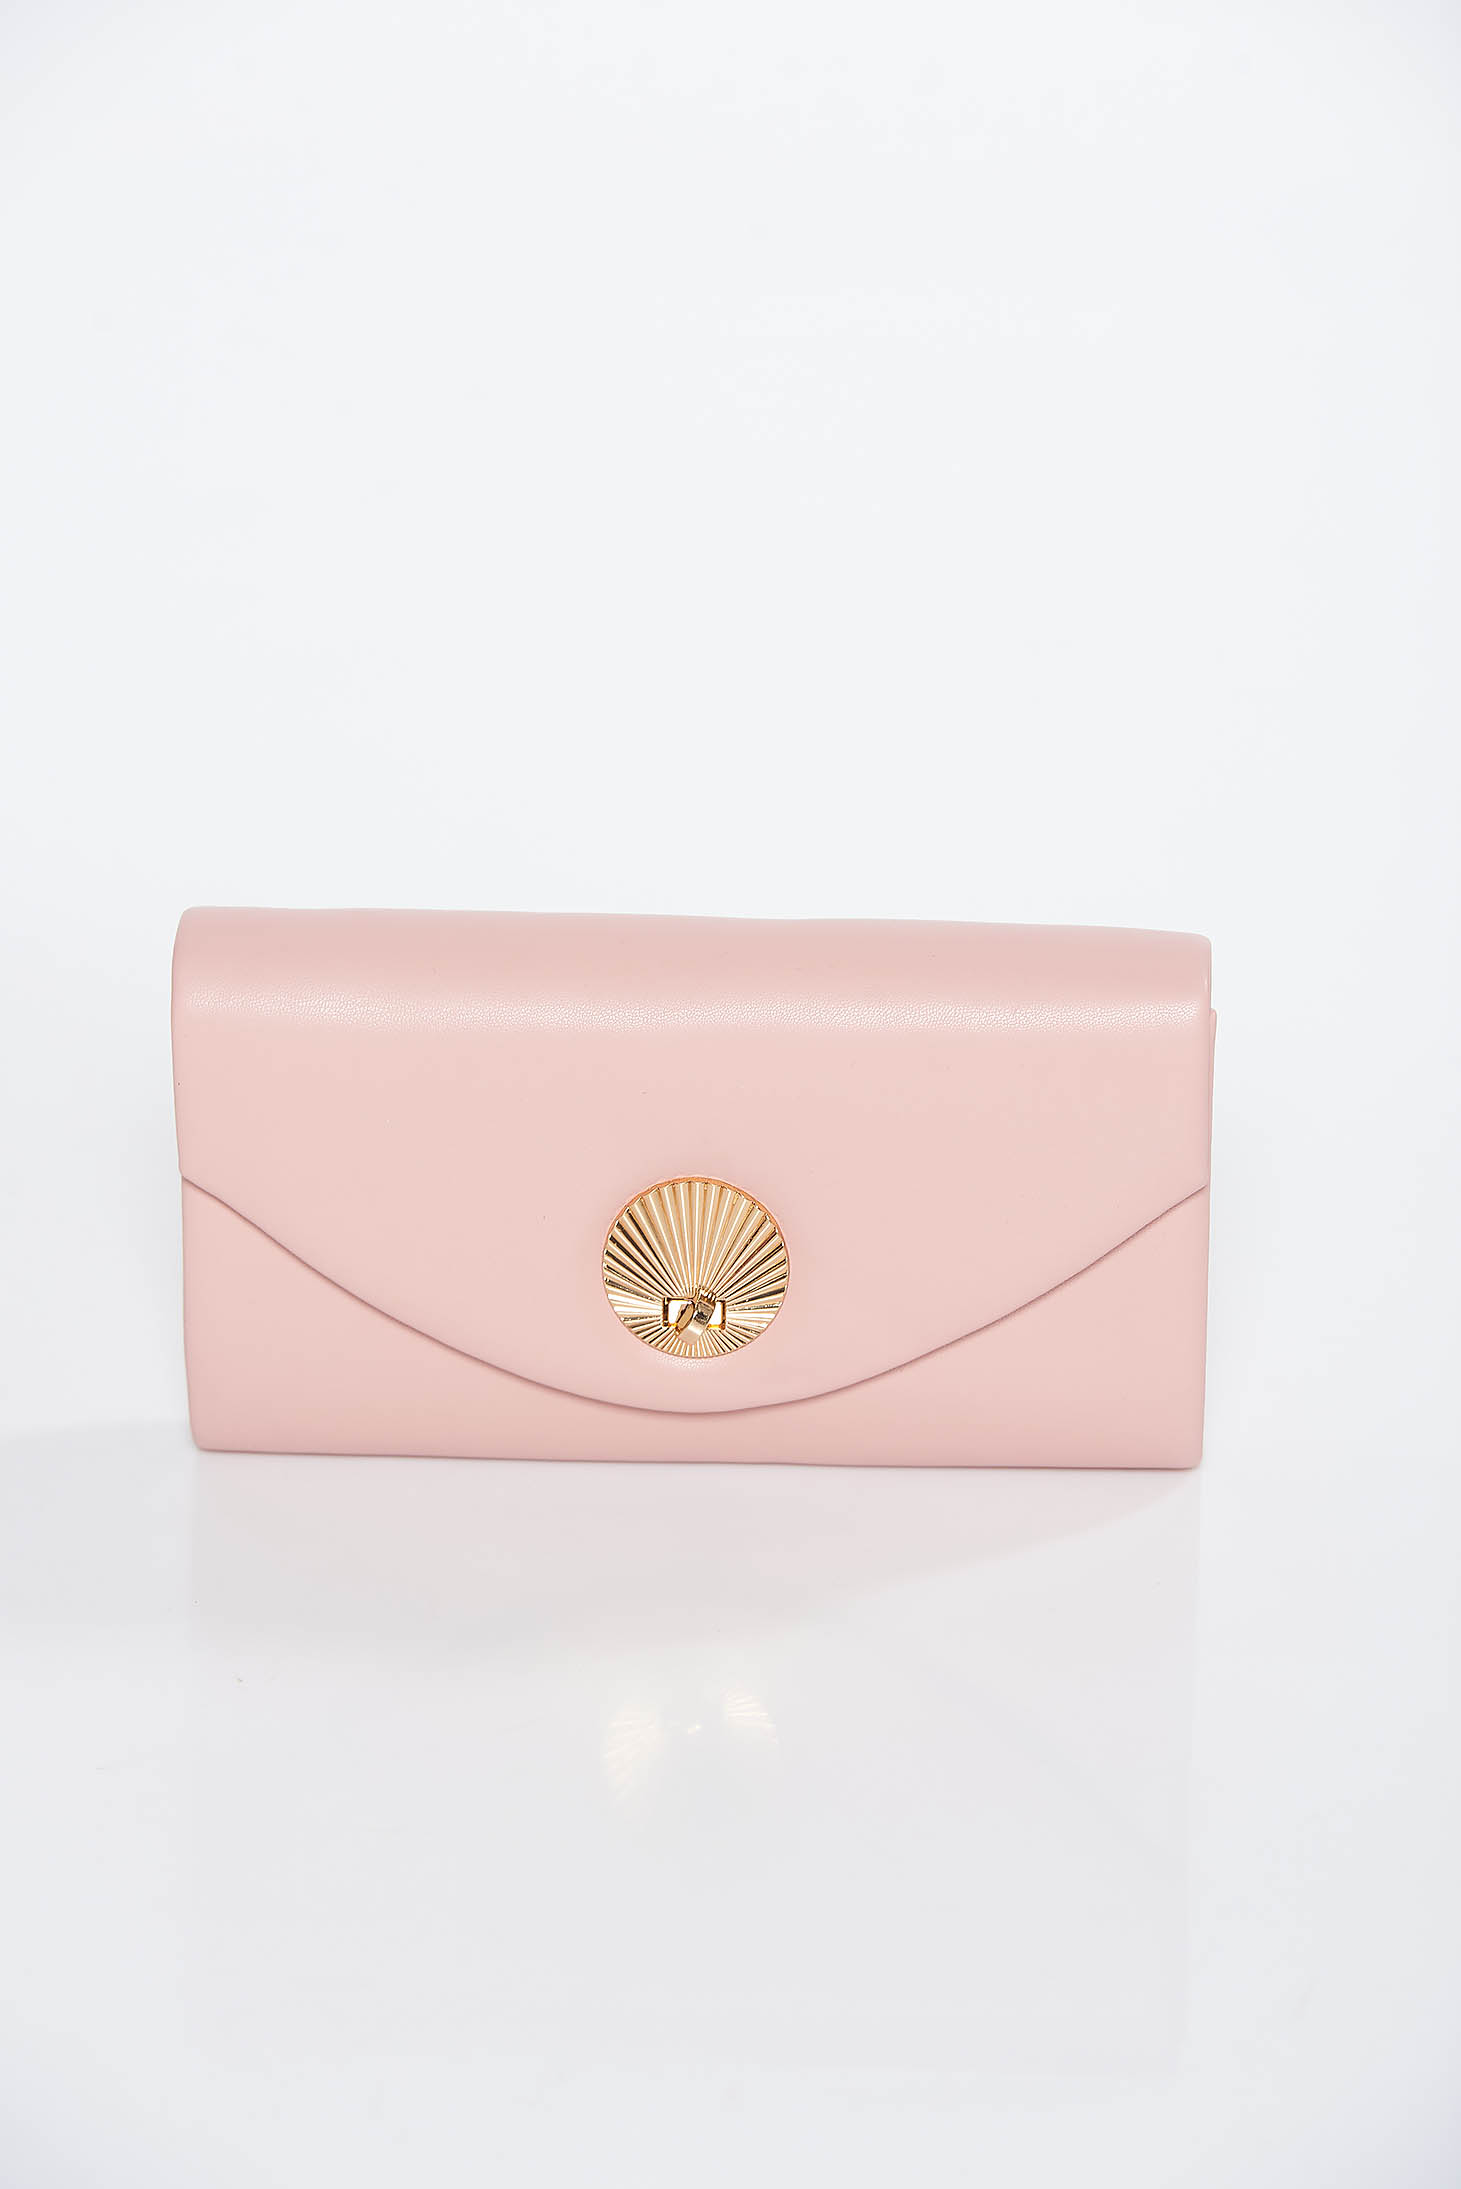 Rosa clutch bag from ecological leather long chain handle